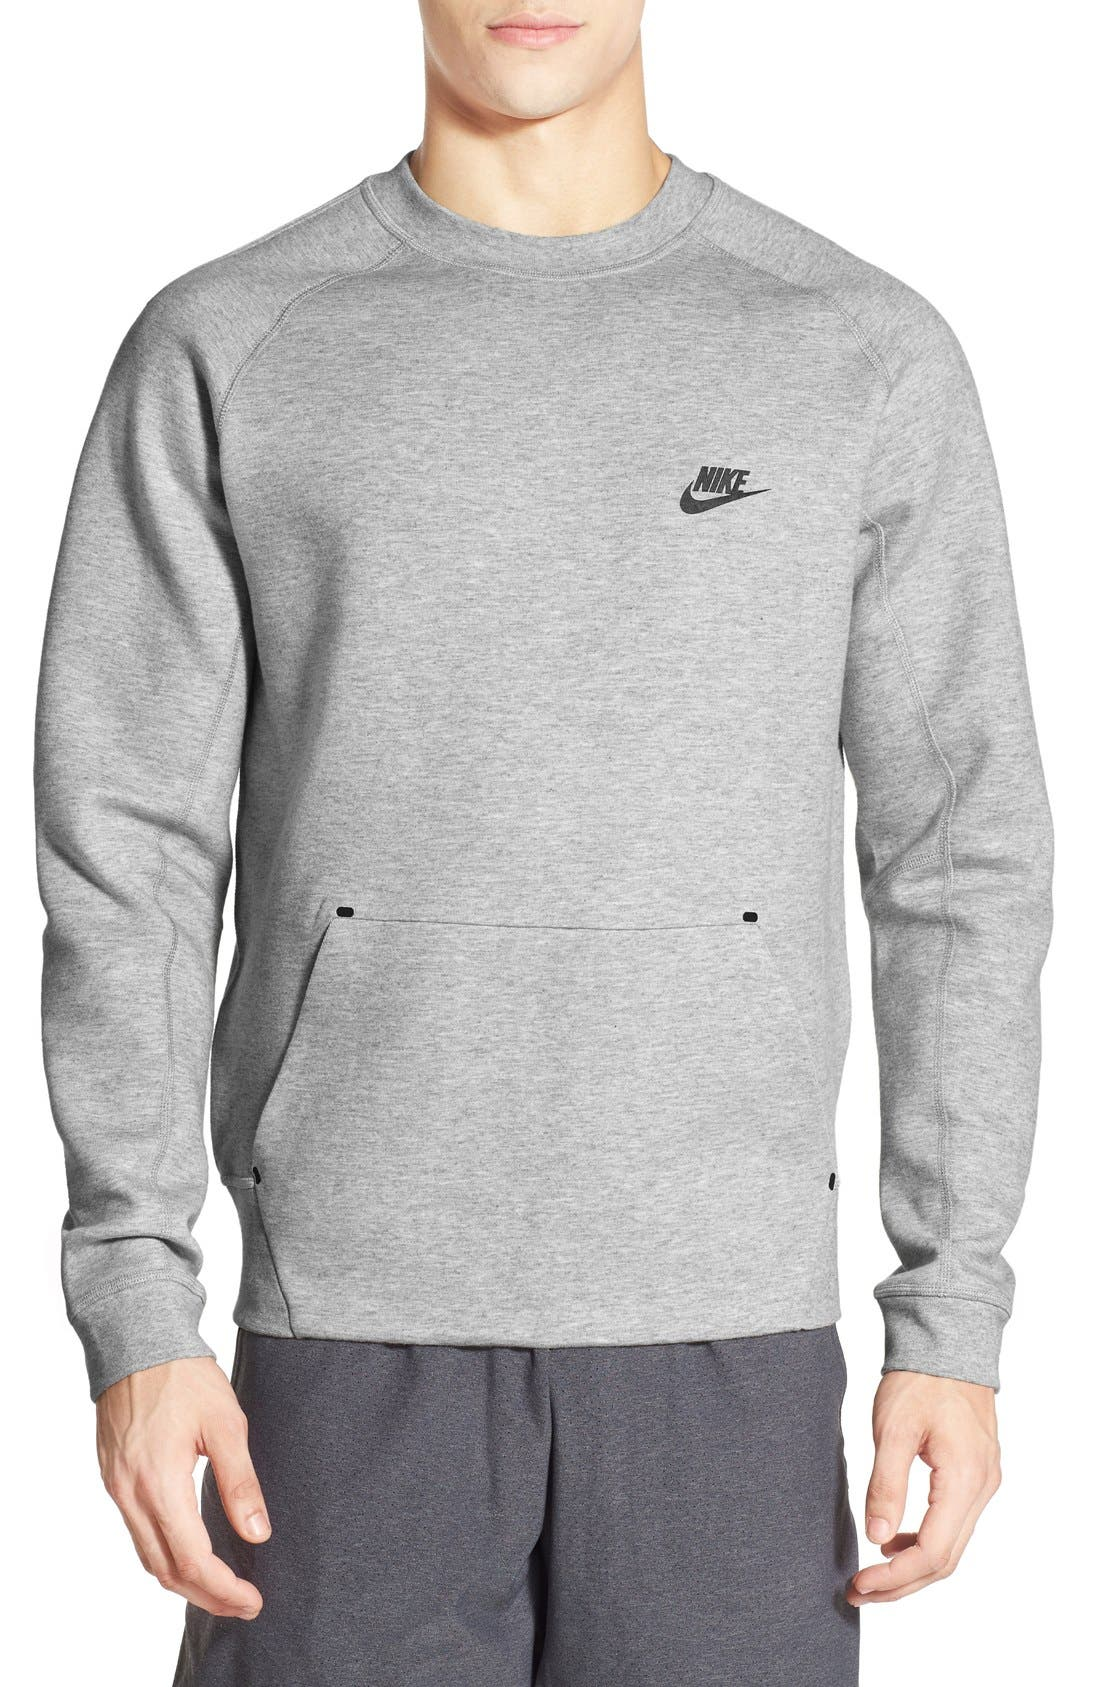 Nike 'Tech Fleece' Thermal Crewneck Sweatshirt | Nordstrom